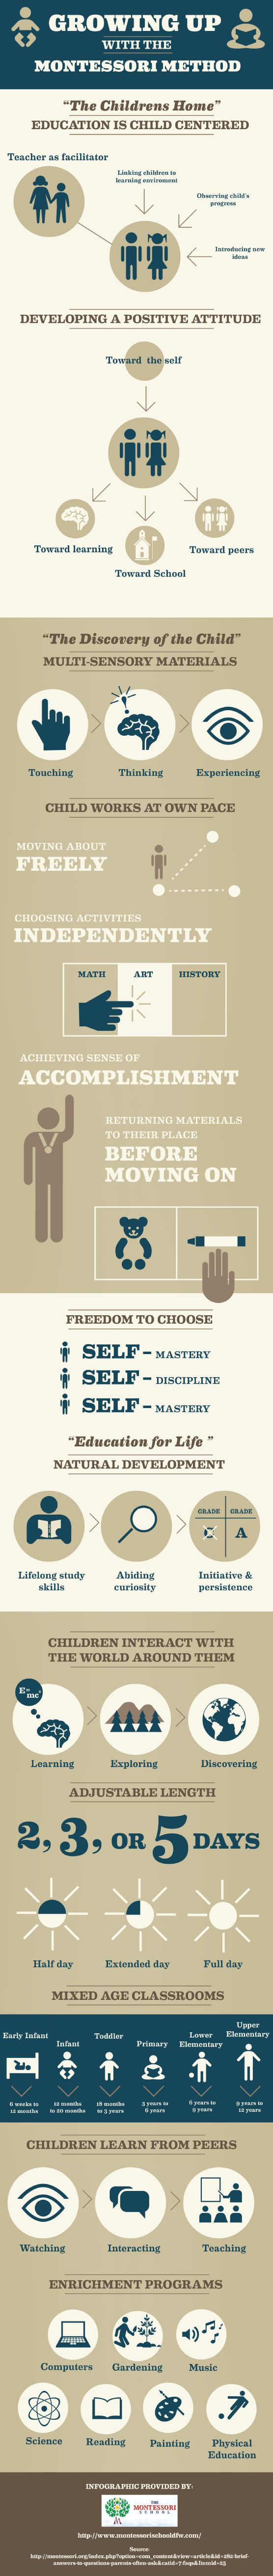 A beautiful infographic explaining more about the goals of growing up Montessori